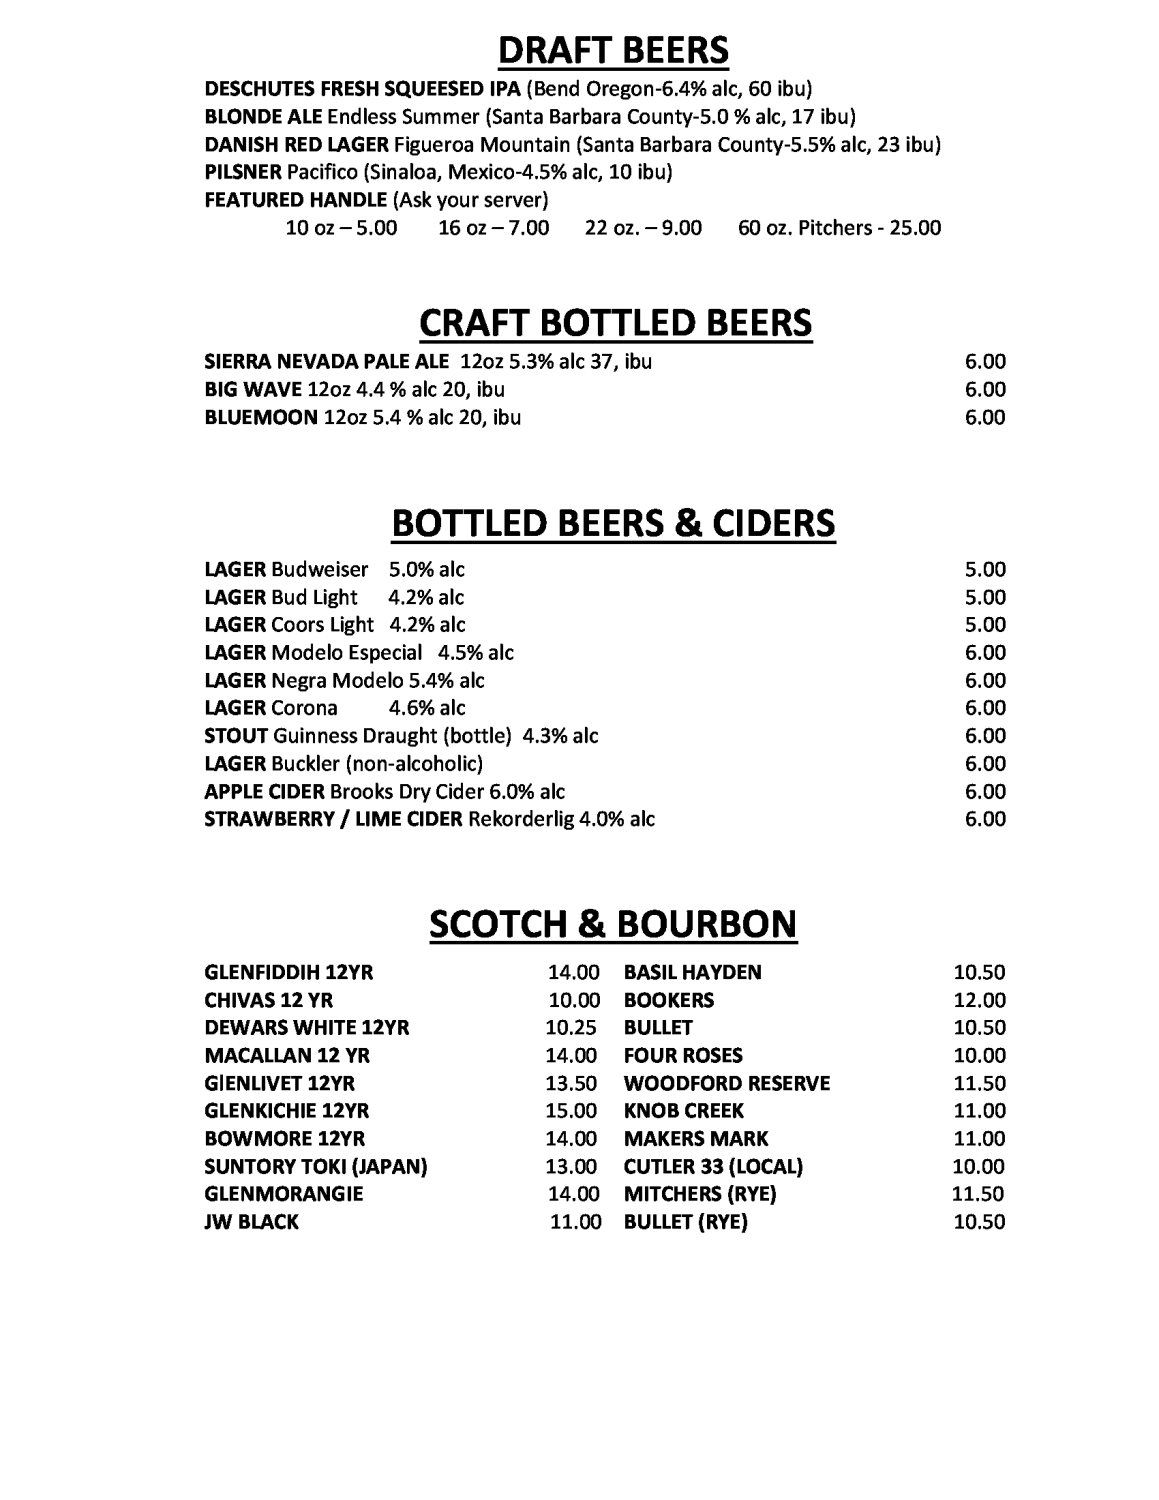 Chuck's Waterfront Grill Menu - Chuck's Waterfront Grill